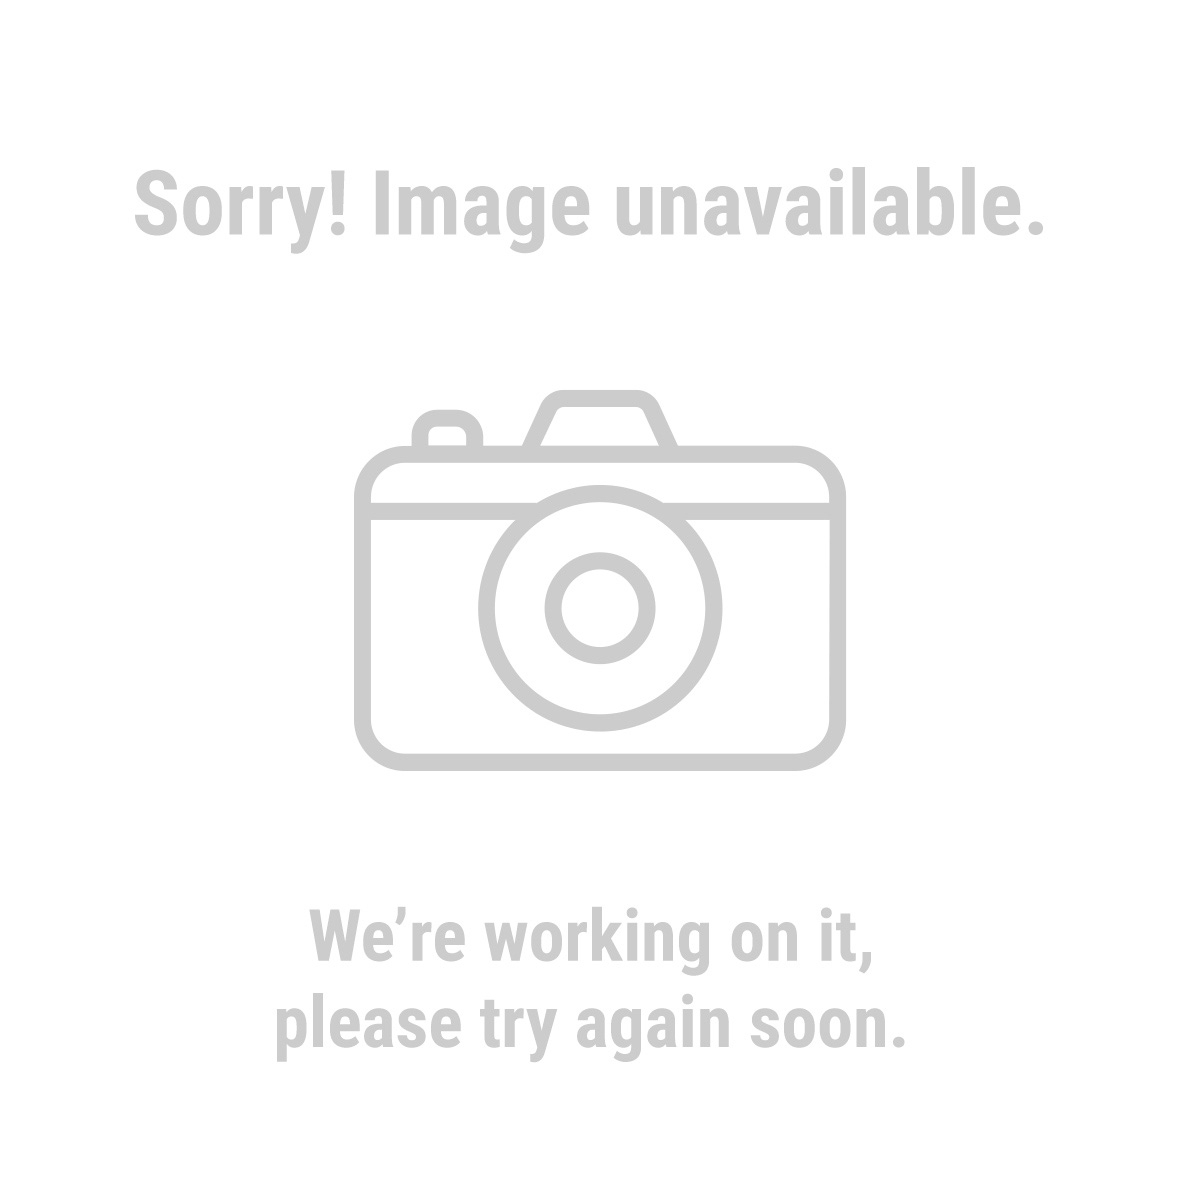 Chicago Electric 67516 120 Volt 15 Amp GFCI Outlet With LED - White